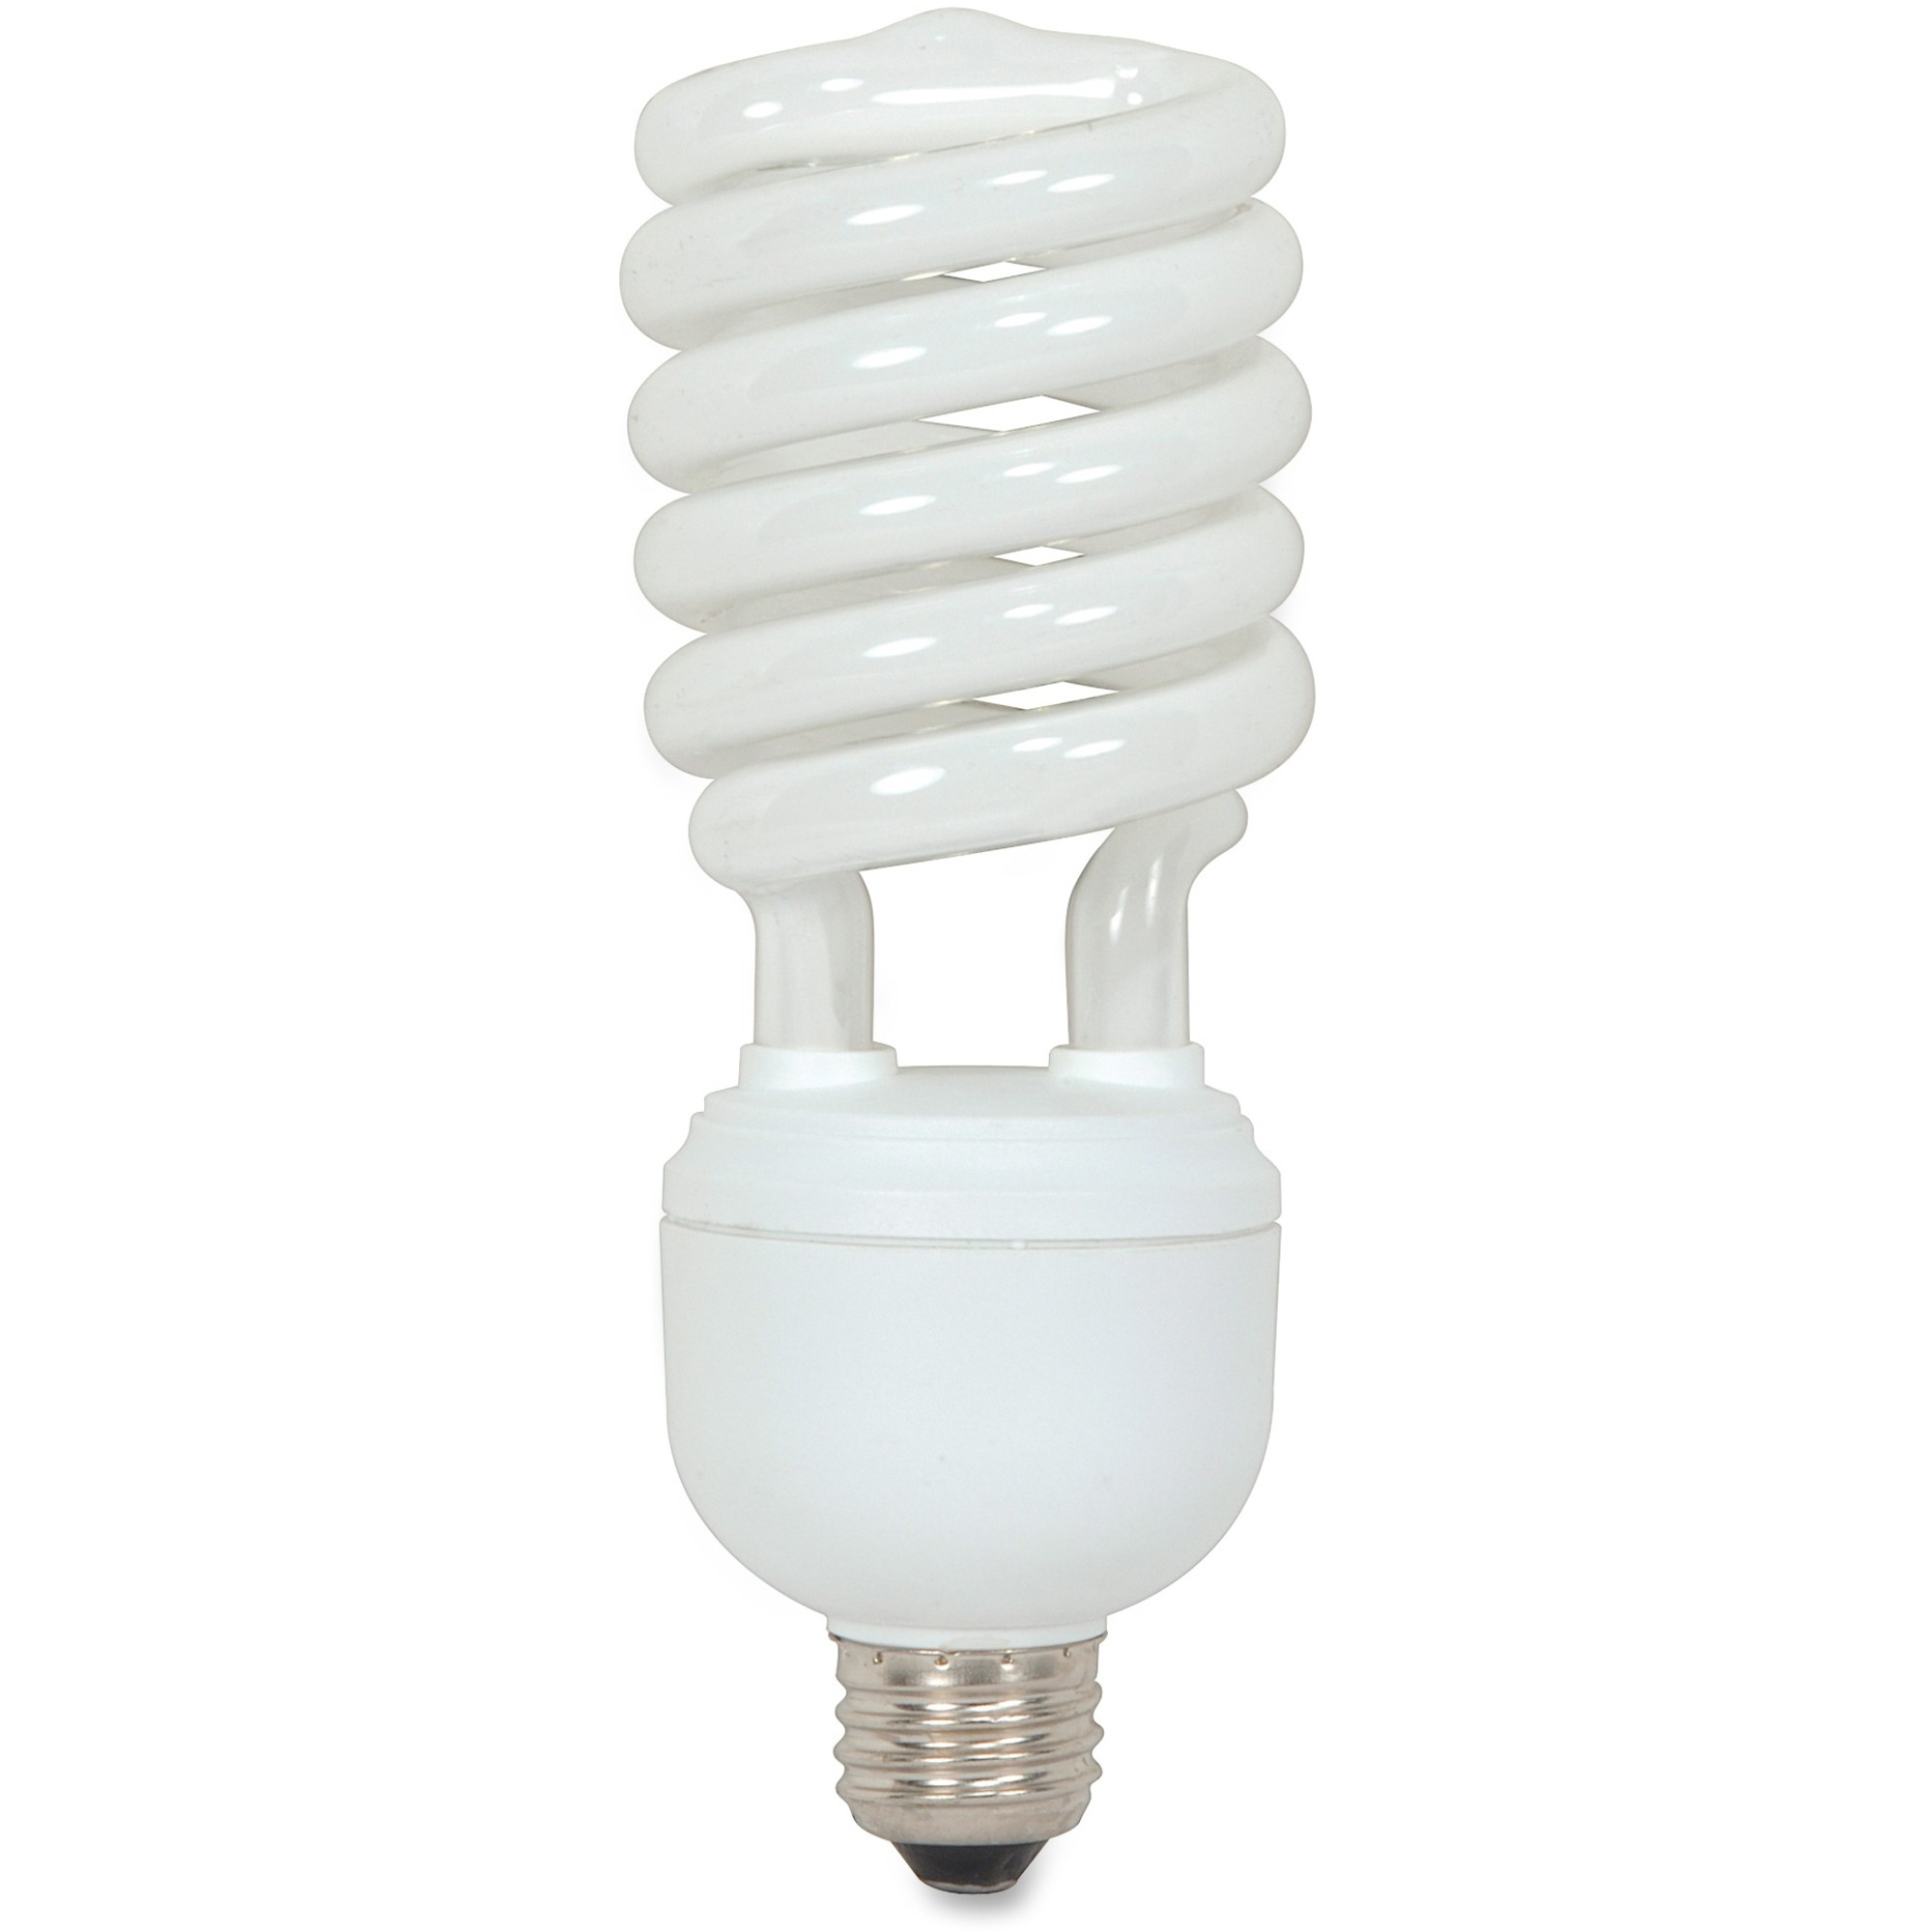 hybrid in efficiency energy brighten smart switch new you cfl ge when instant incandescent hate format on flip lighting to up halogen but waiting bulbs of love a bulb cfls combines the them light for article